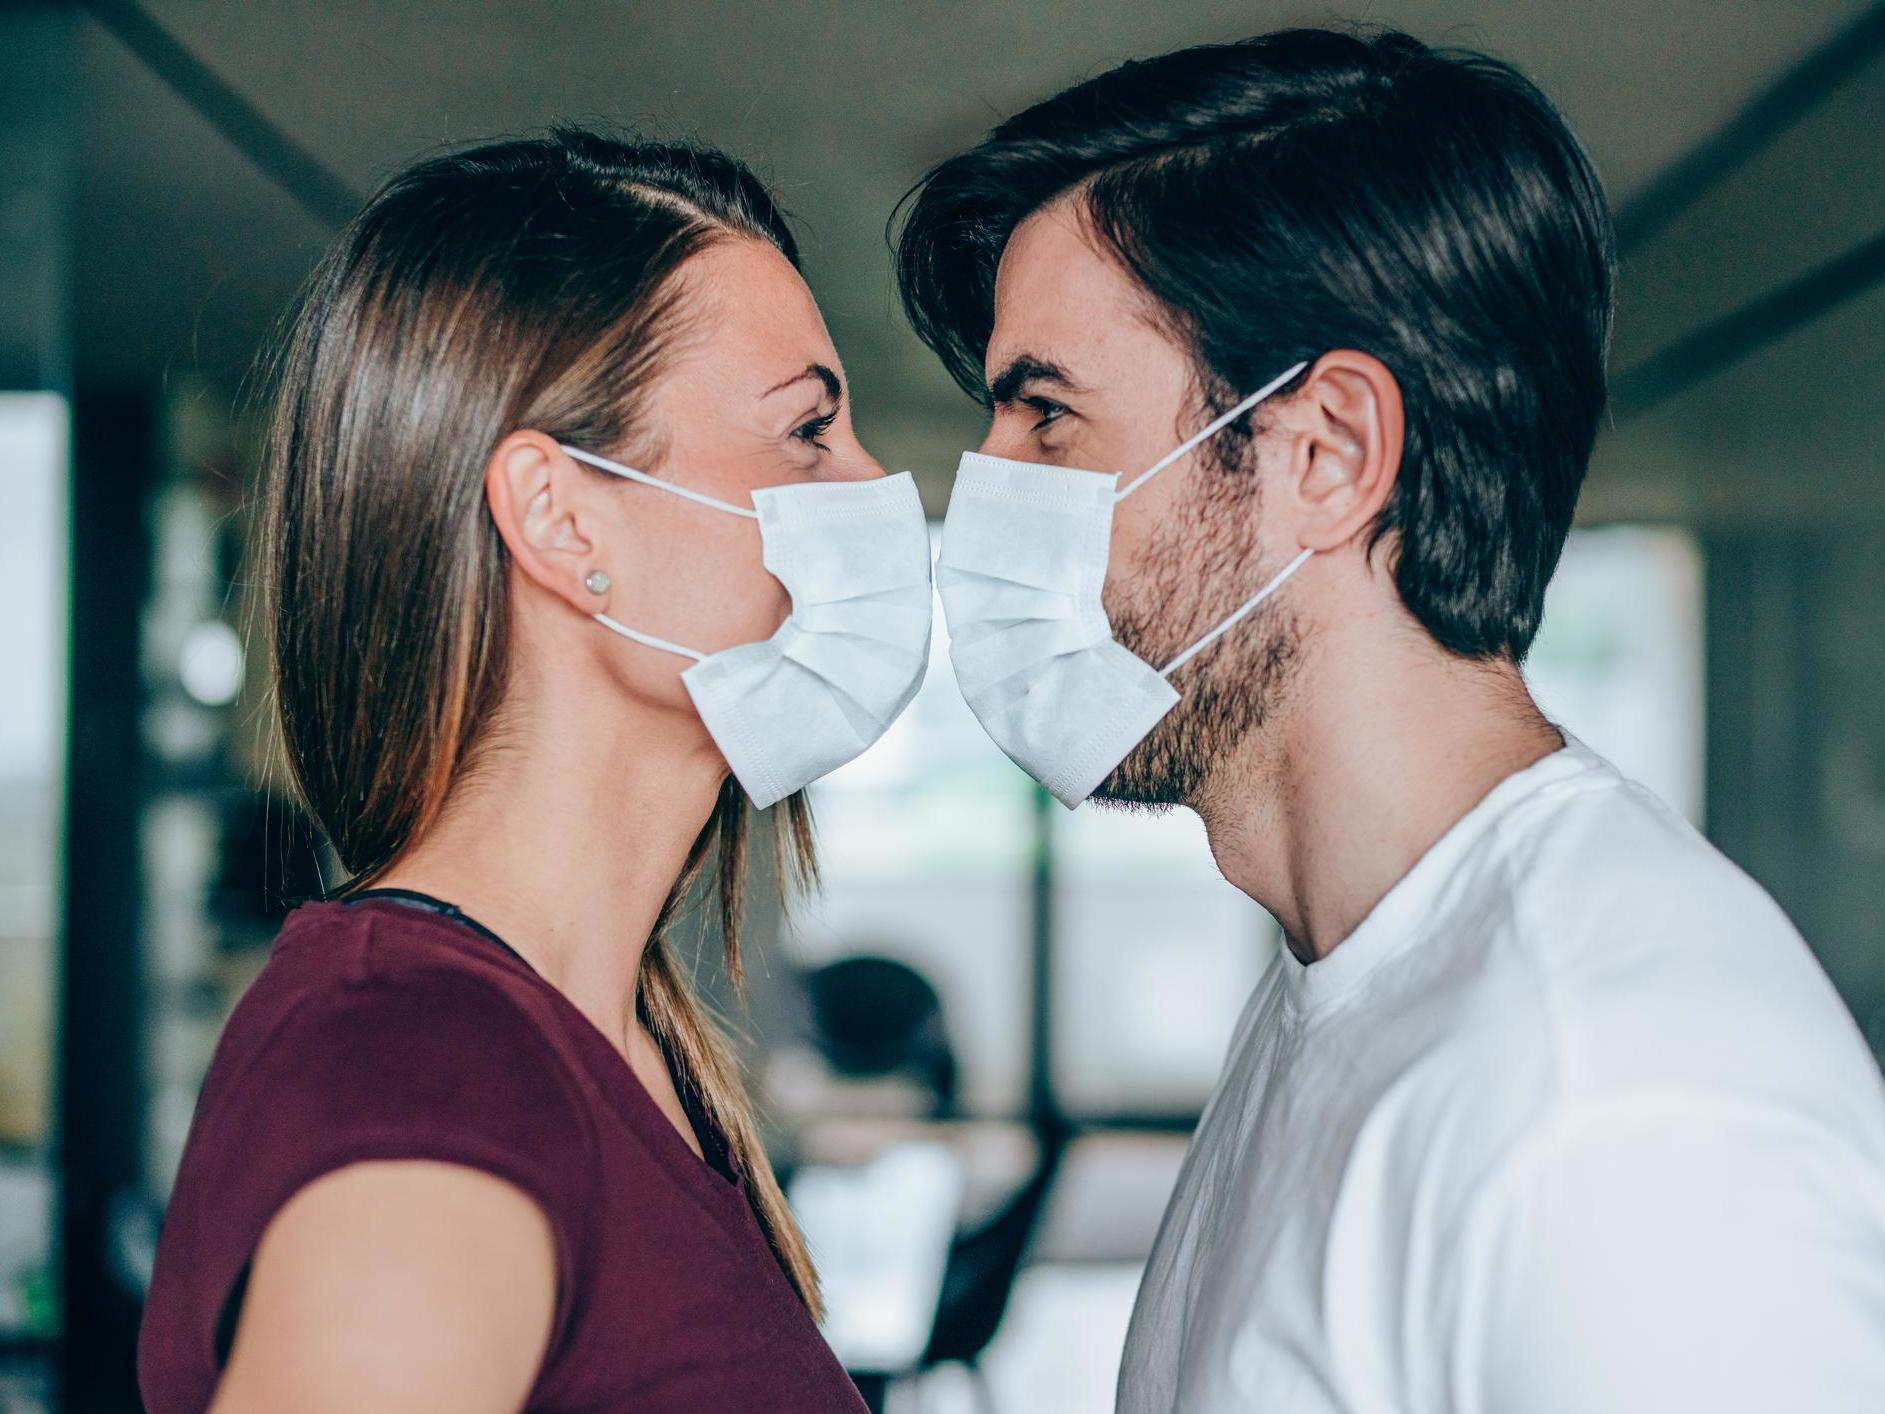 Avoid kissing and wear face masks during sex to prevent spread of coronavirus, charity says